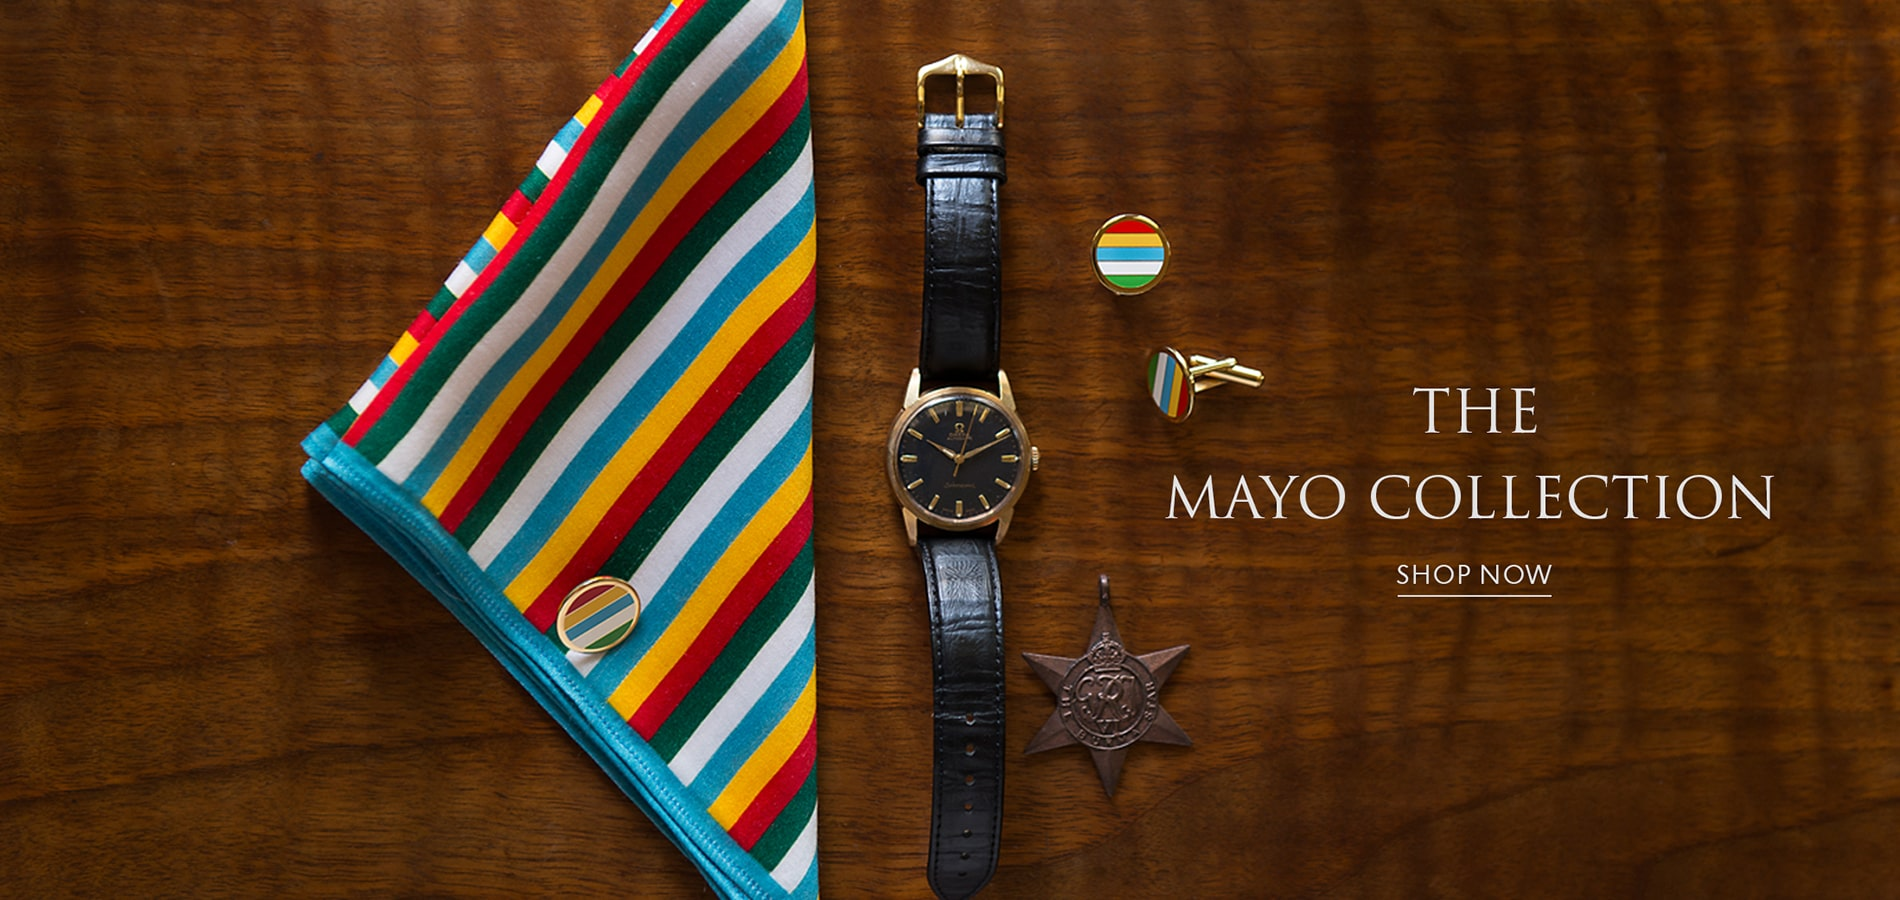 Mayo Collection